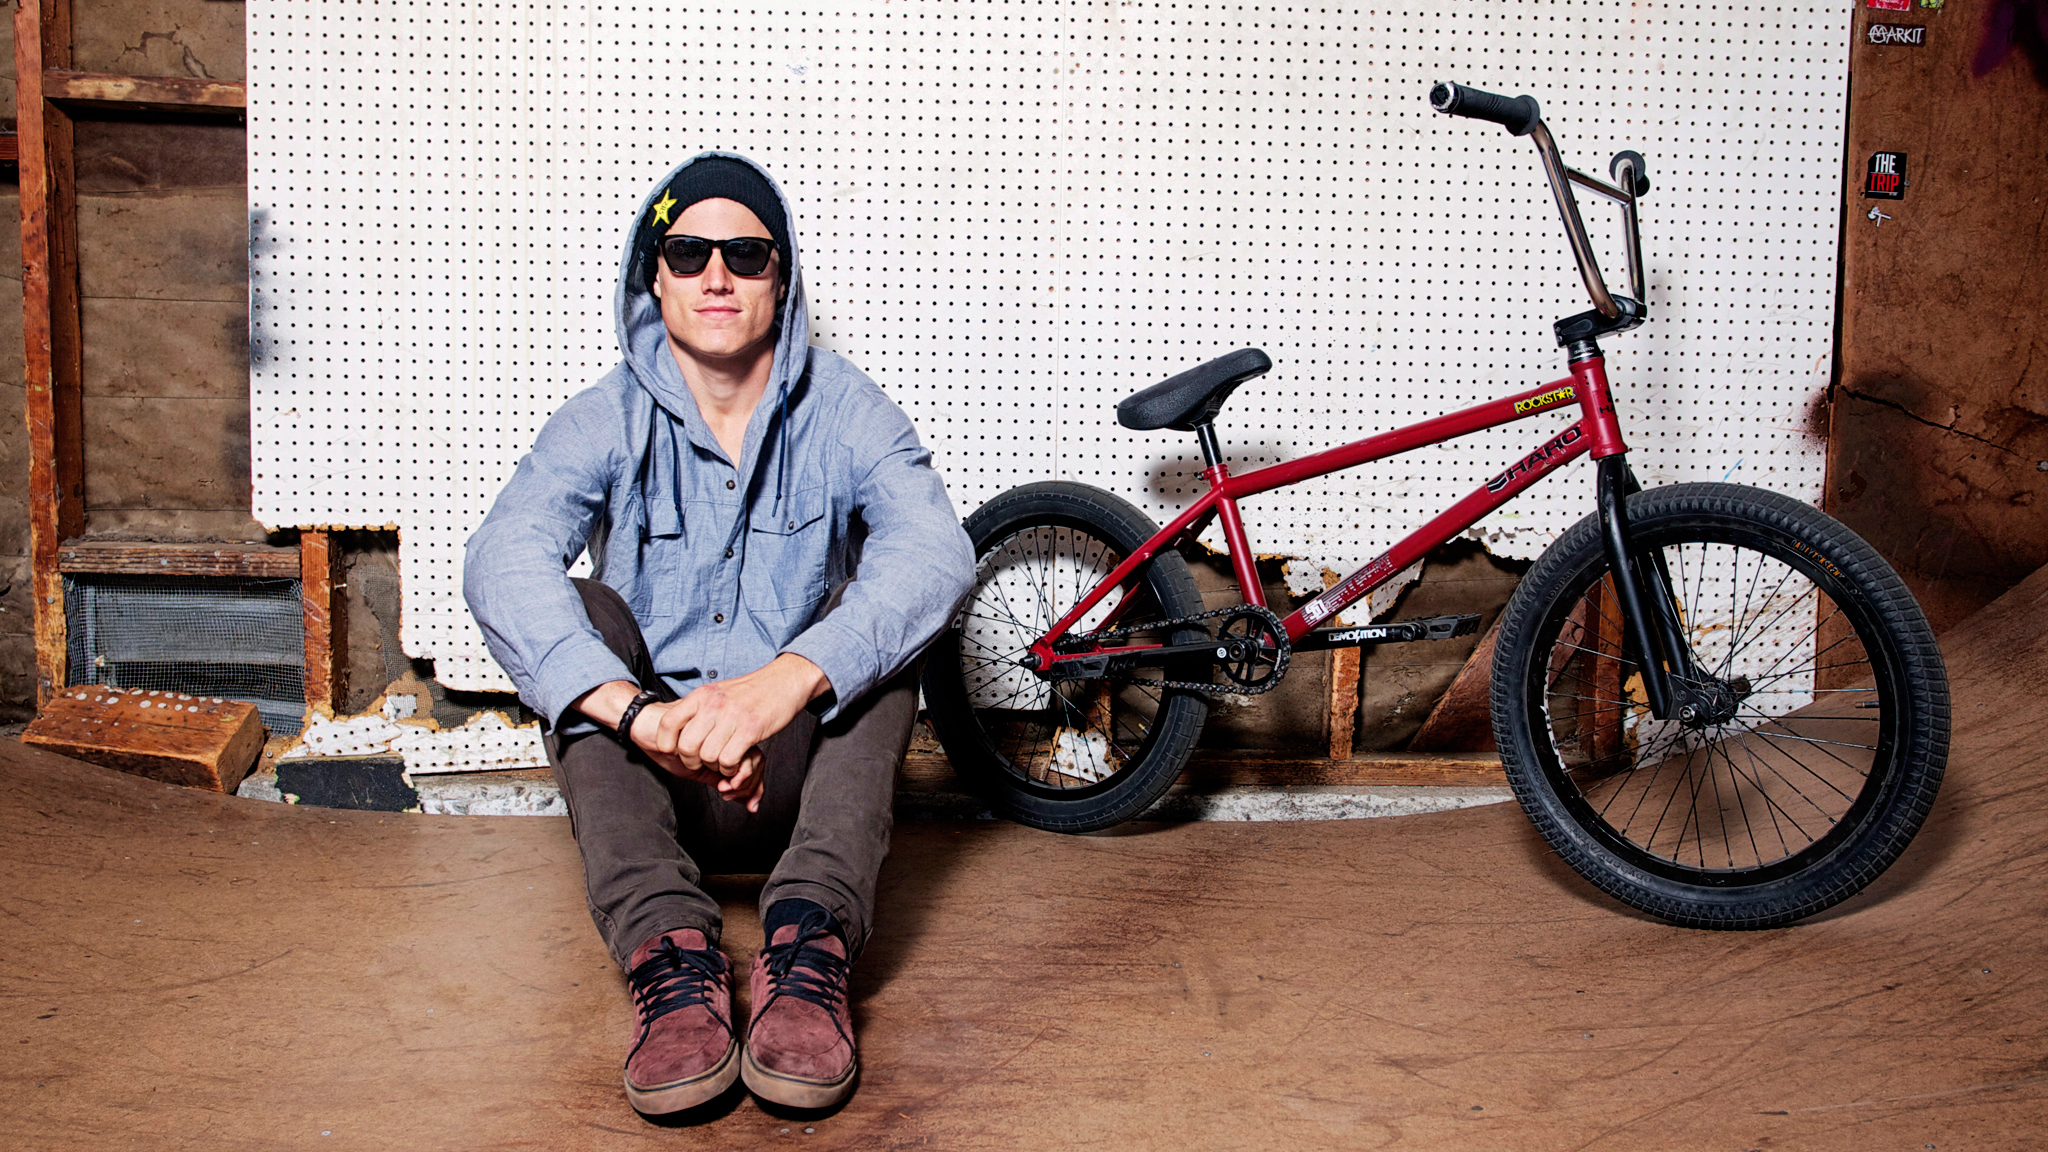 /photo/2013/0206/as_bmx_enarson1_2048.jpg